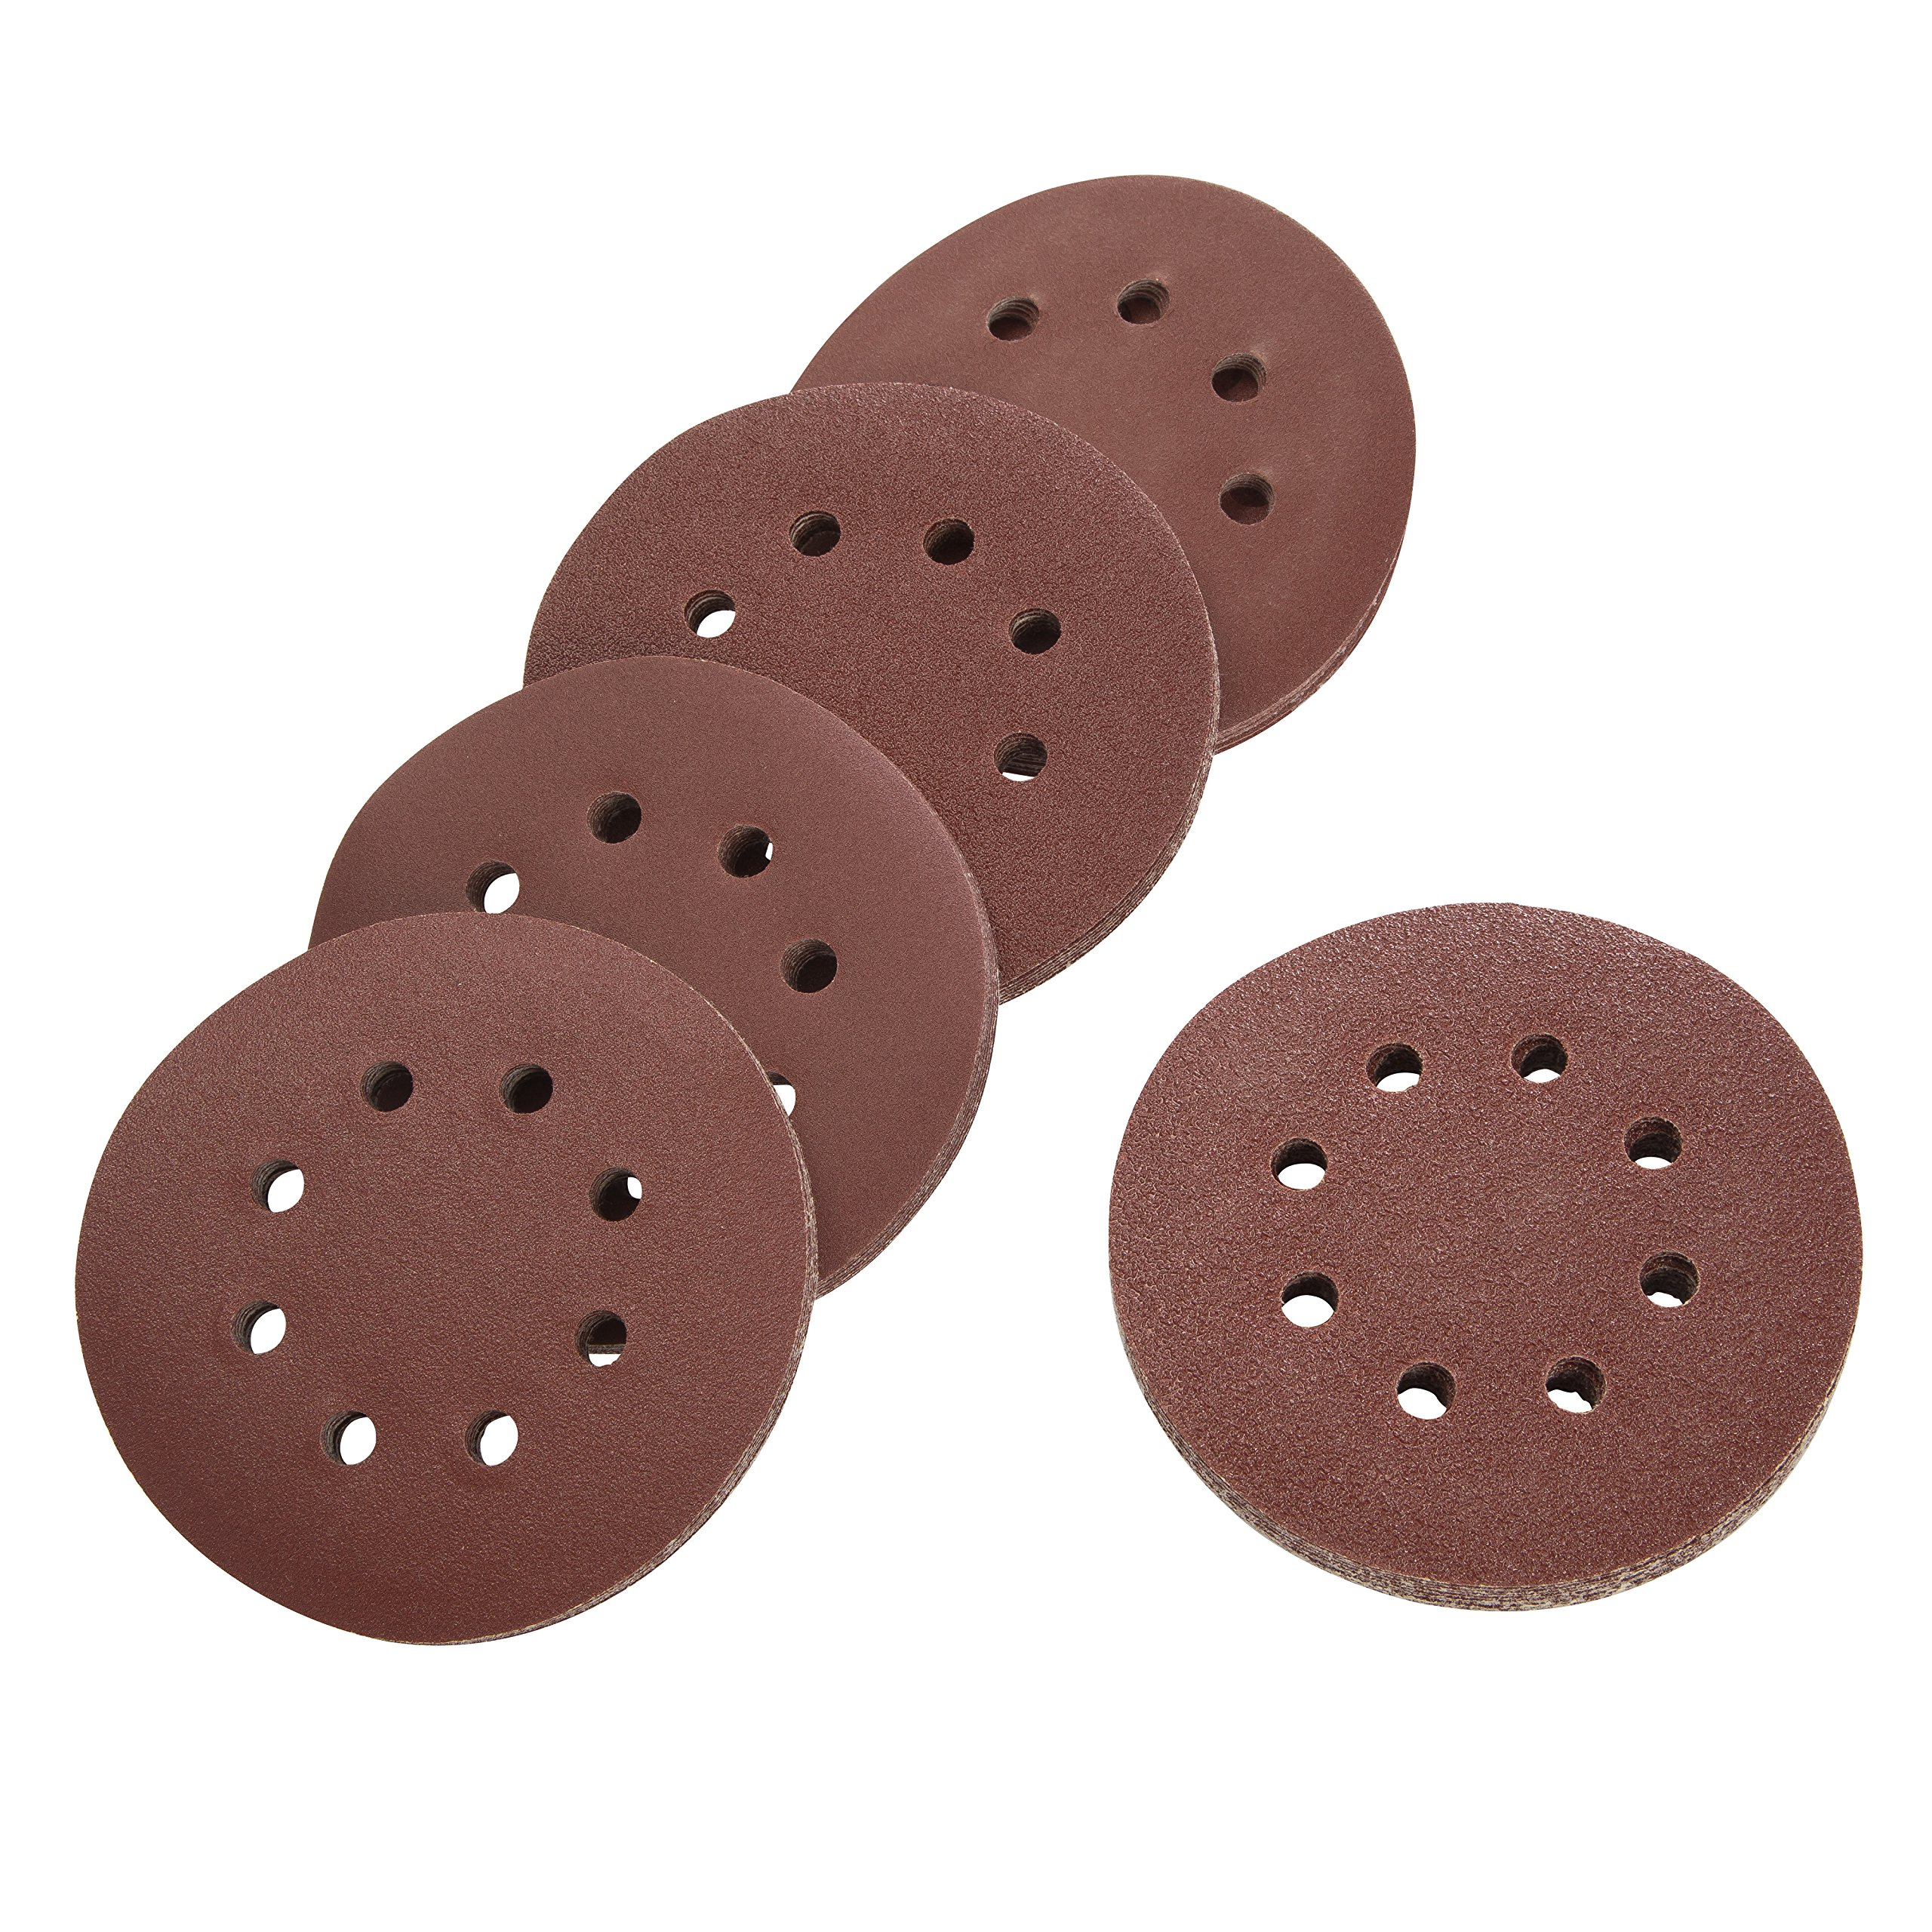 100 Pack Assorted Sanding Discs, 5 Inch Hook and Loop Round Sandpaper Discs, Dustless 8 Hole Sand Paper, Assorted Pack Includes 20 Discs Each of 60 Grit, 80 Grit, 120 Grit, 180 Grit, and 220 Grit